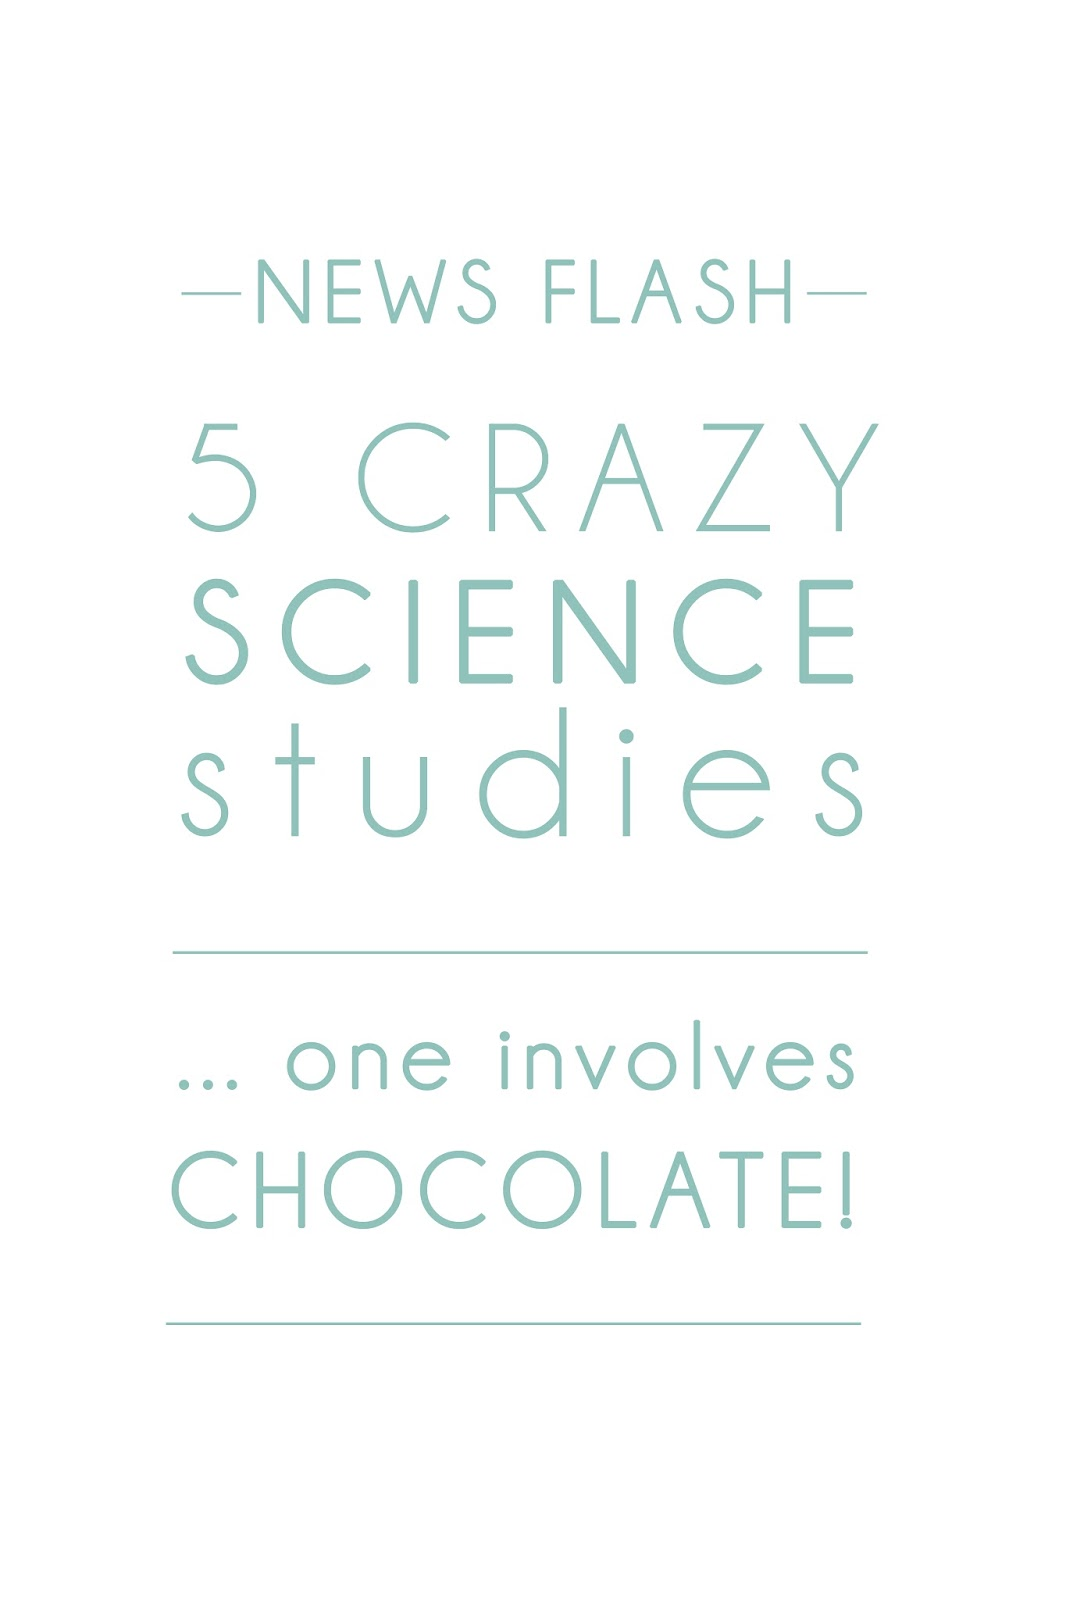 5 Crazy Science Stories - www.beaucience.co.uk